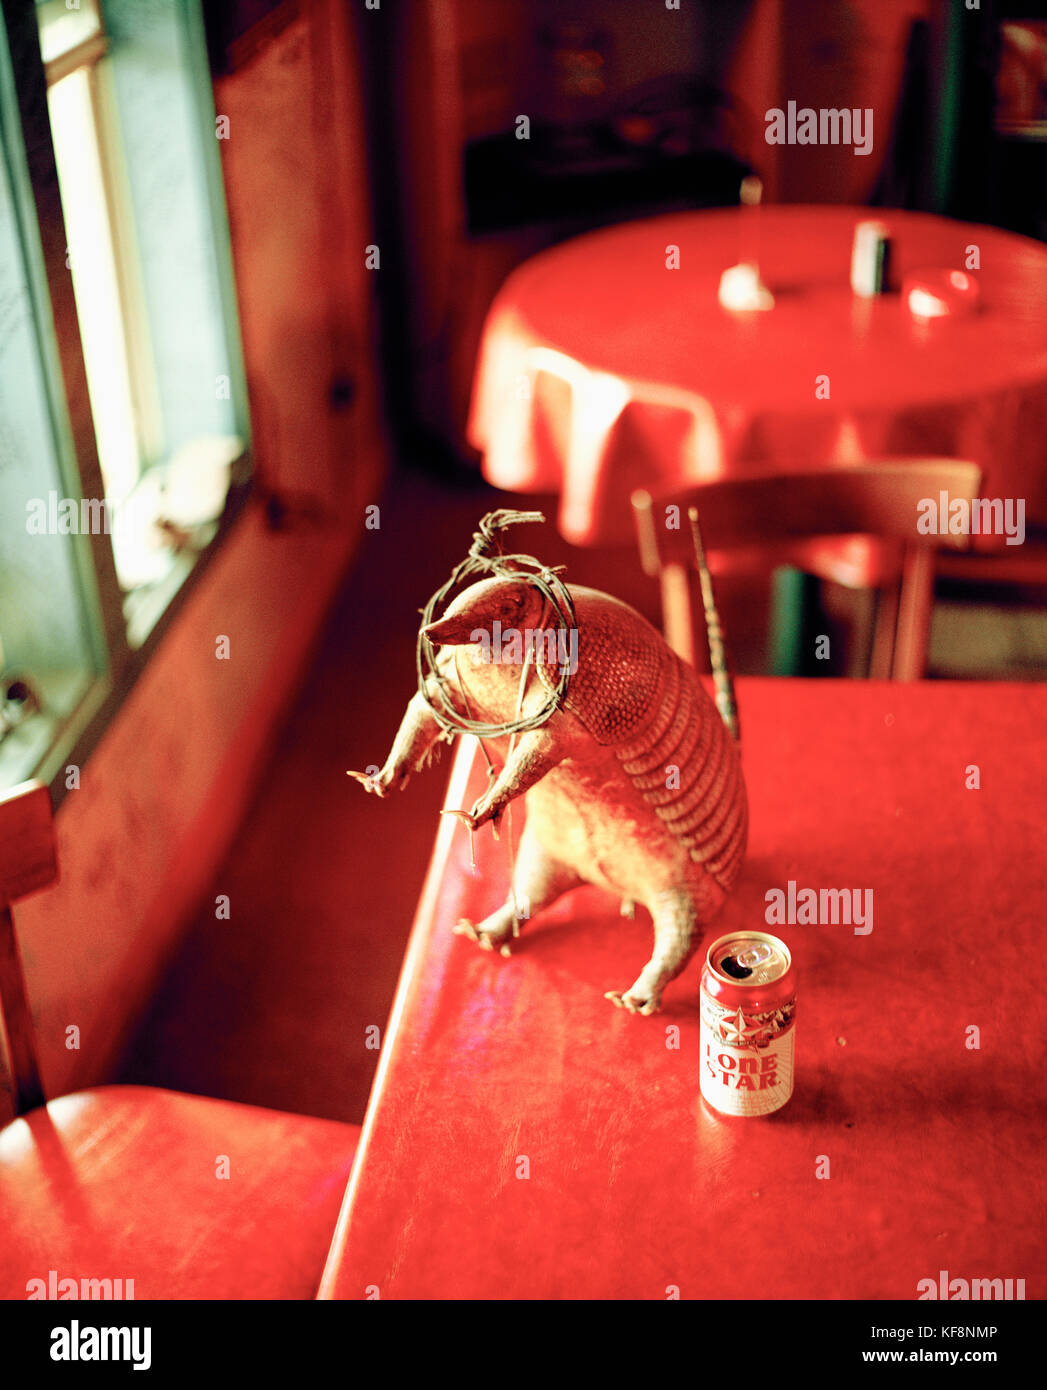 USA, Texas, stuffed armadillo and a Lone Star beer, Harry's BBQ, Willow City - Stock Image